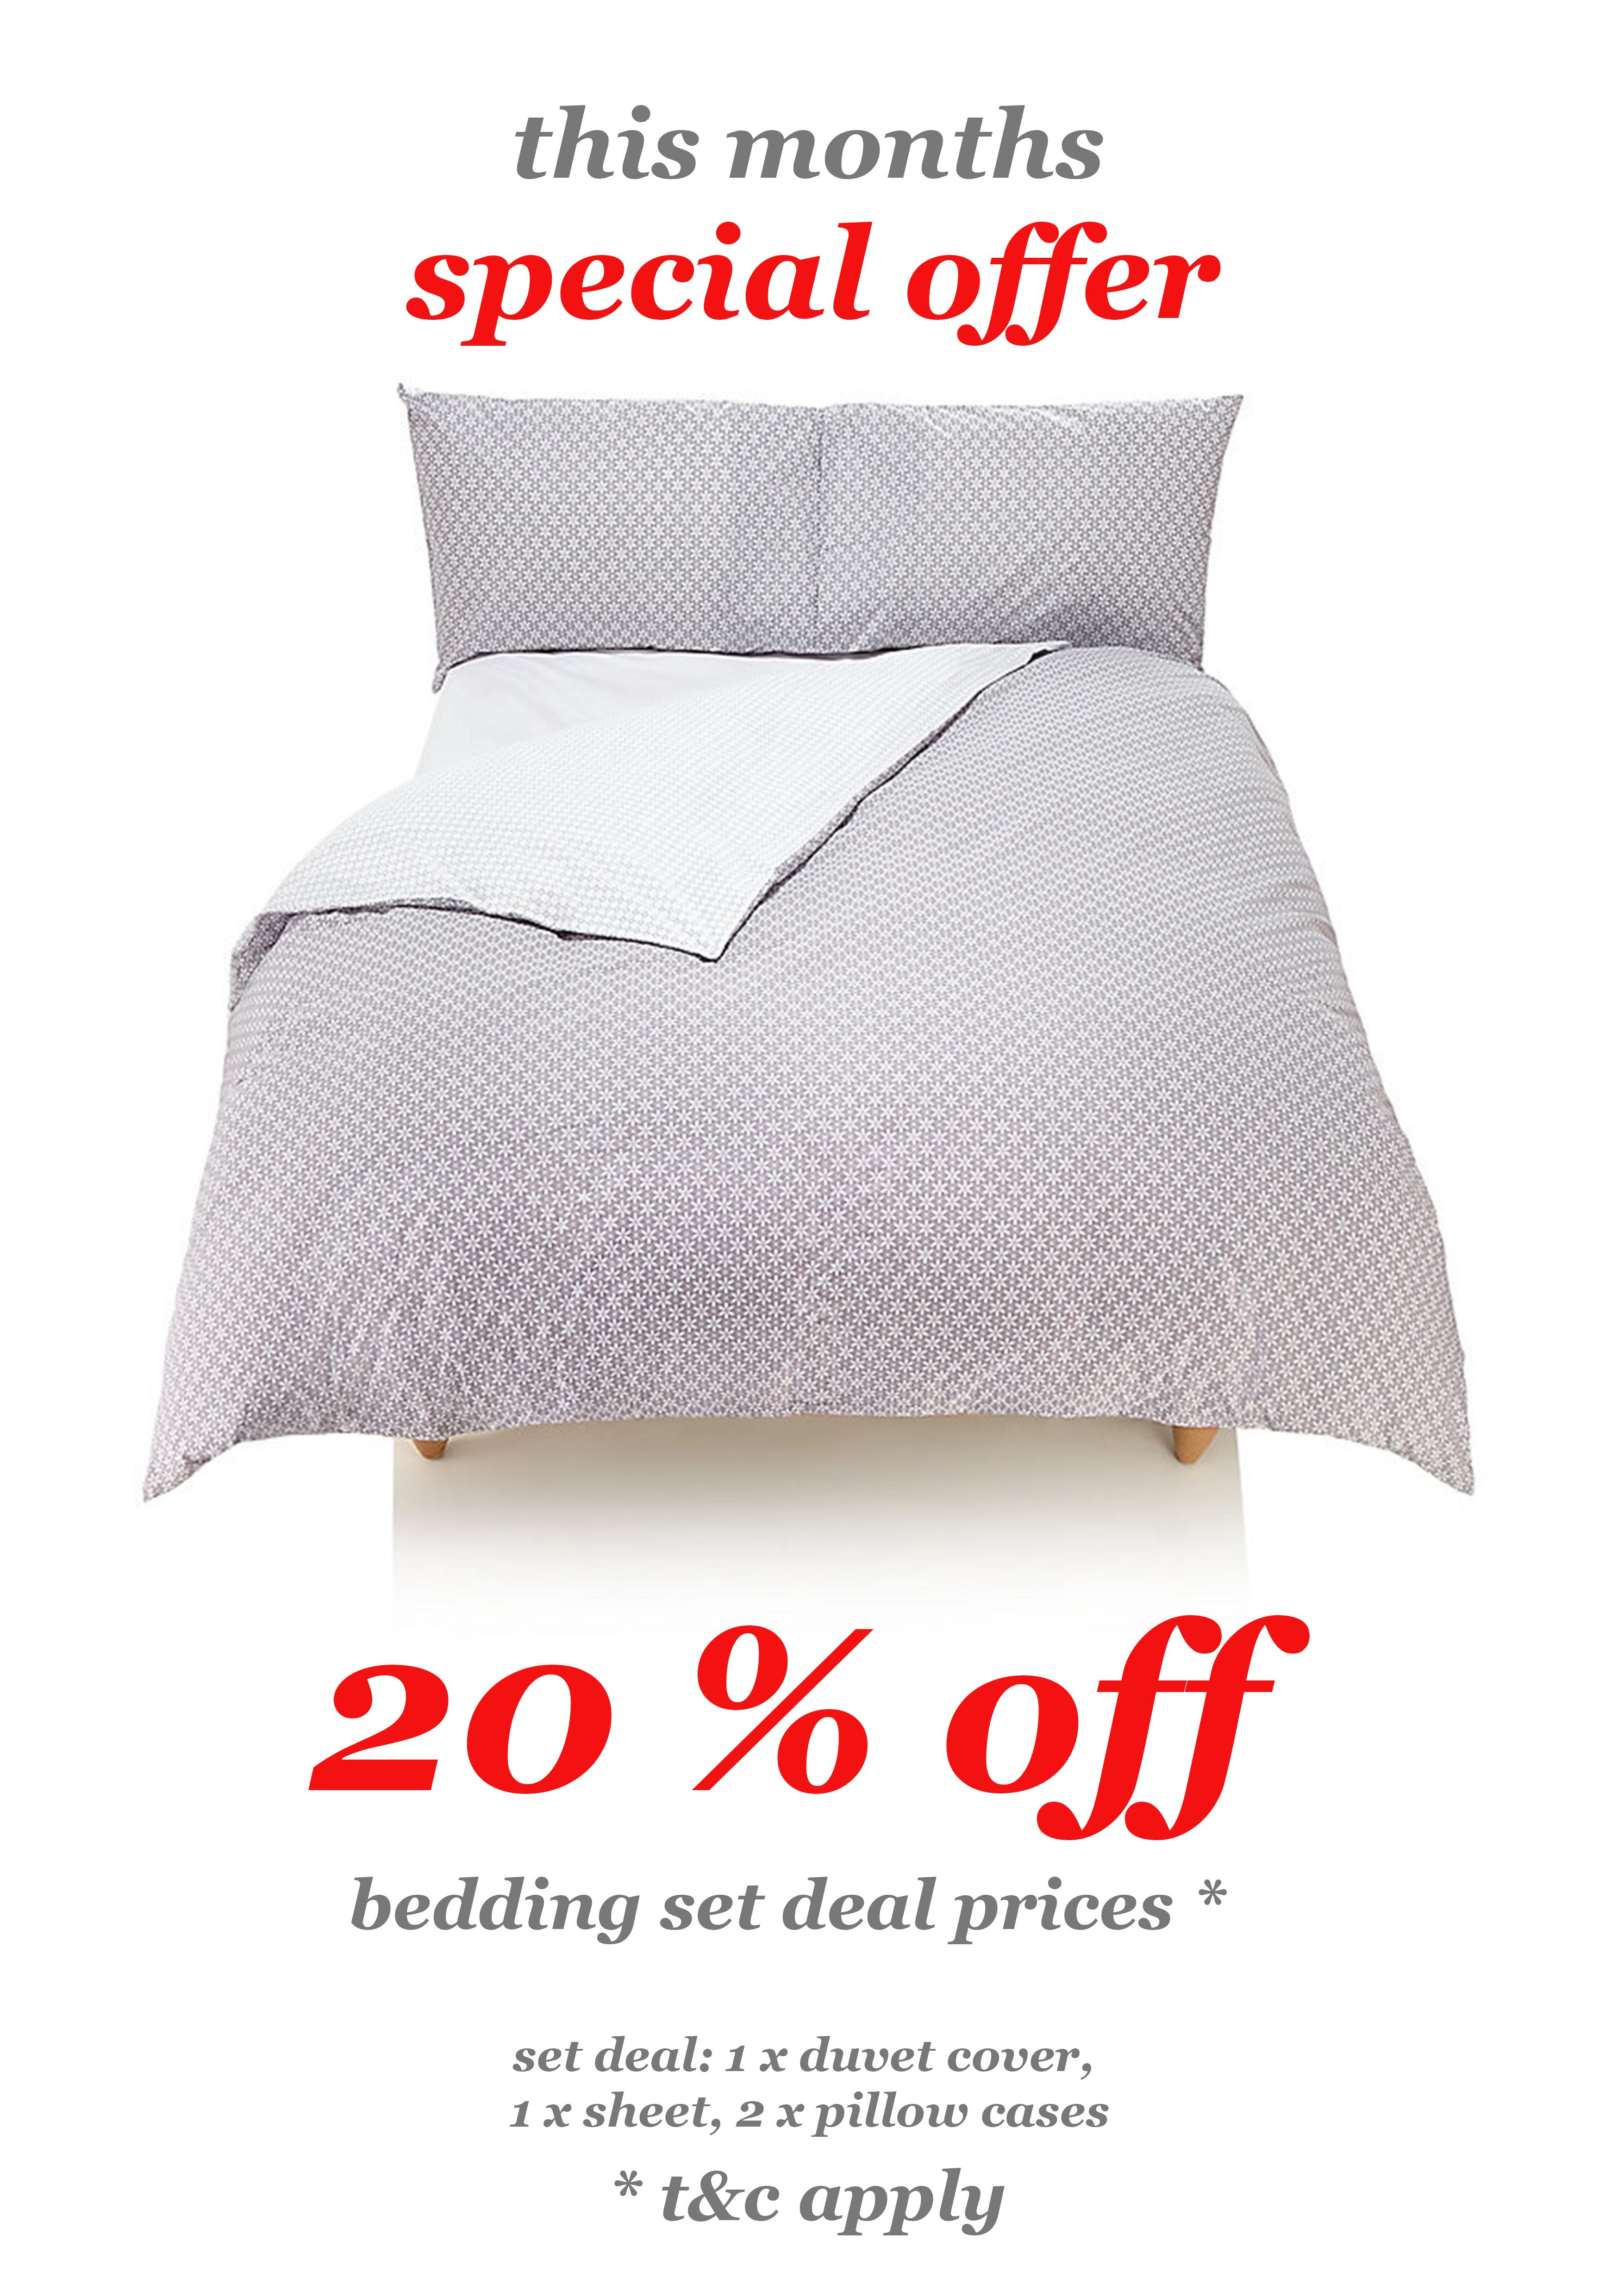 Special Offers - Bedding